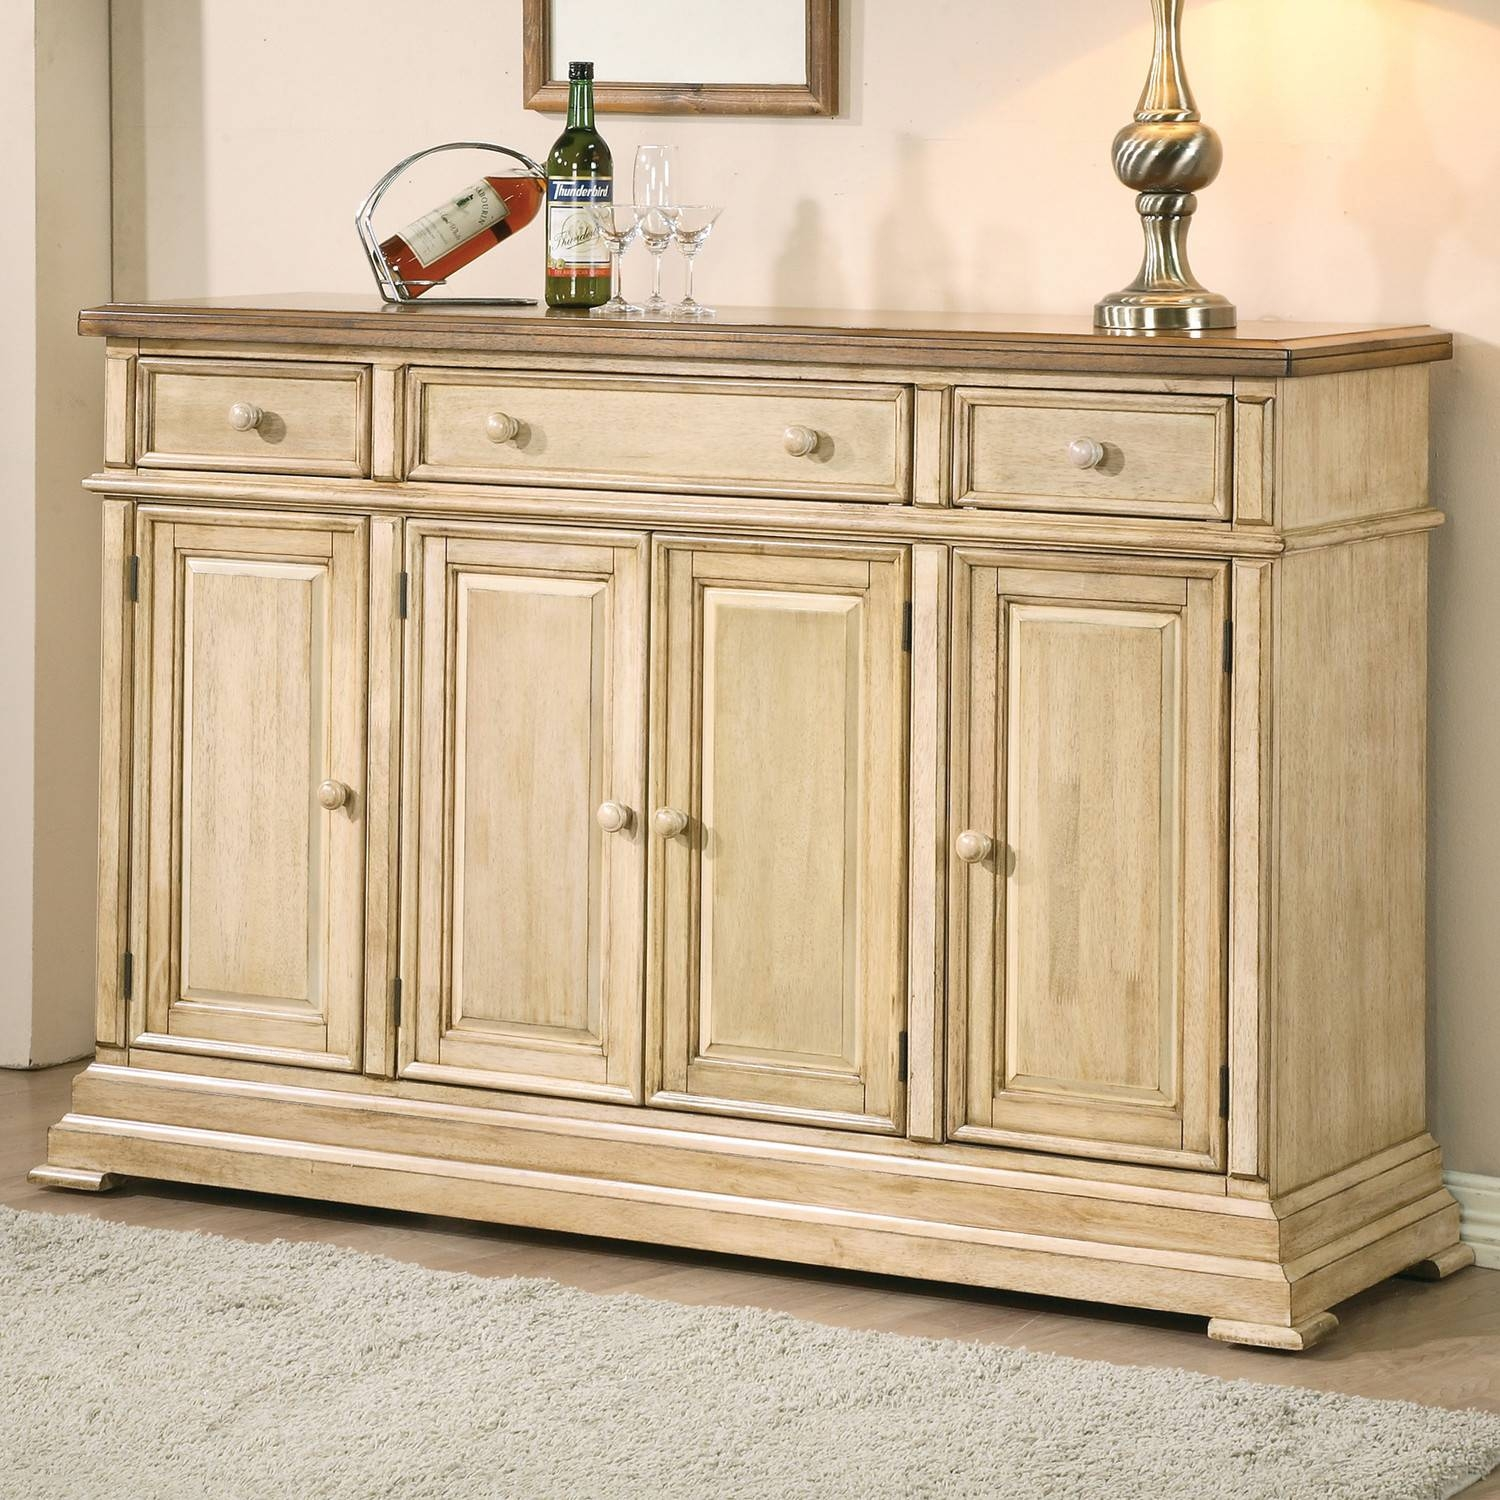 Best Of White Buffet Sideboard – Bjdgjy Throughout Recent Buffet Sideboards (#3 of 15)